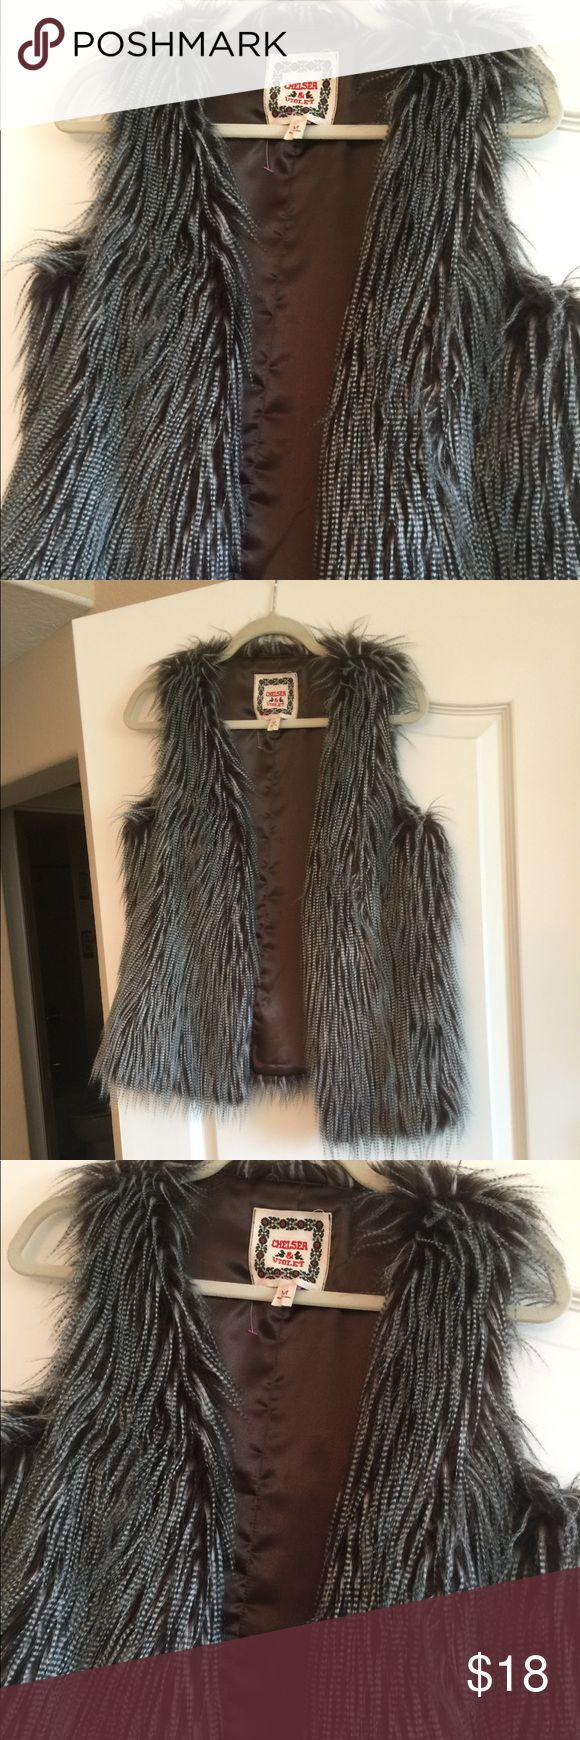 Chelsea & Violet Faux Fur Vest Worn Once Smoke Free Home ❌ Fast Shipping 💨 Open to Reasonable Offers Chelsea & Violet Jackets & Coats Vests